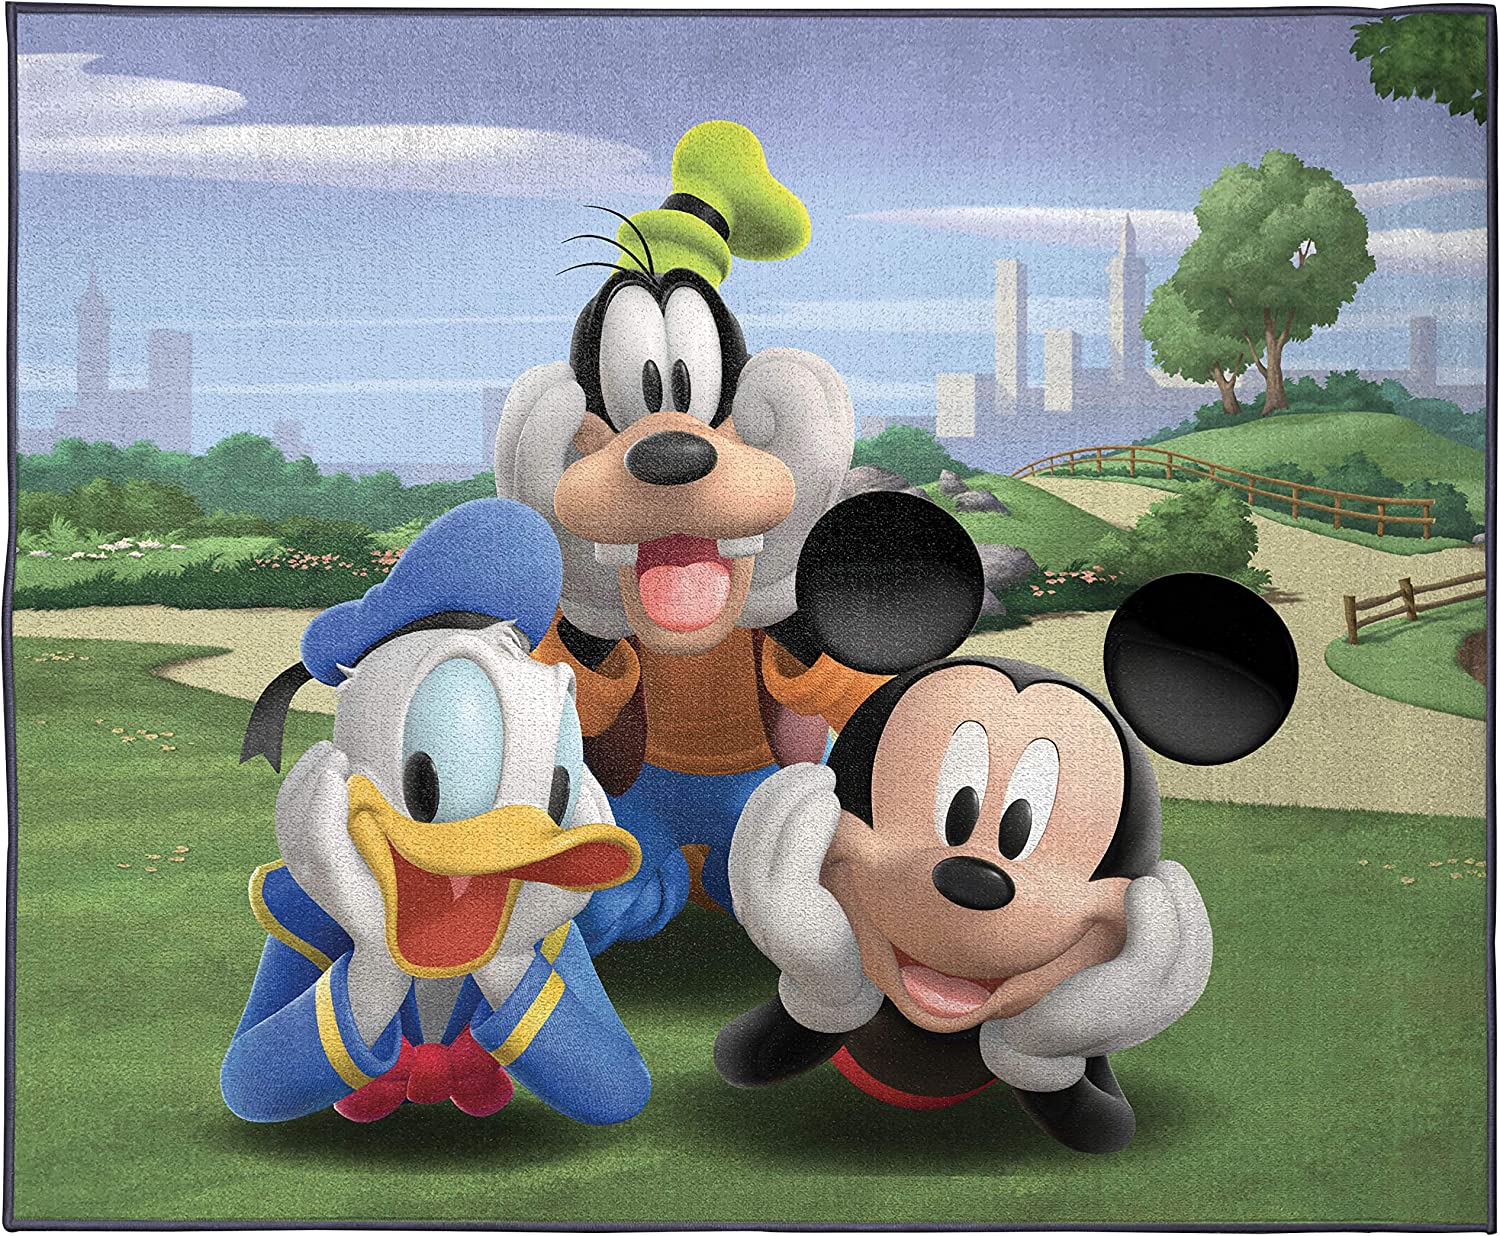 Disney Junior Mickey Mouse Clubhouse Gang Kids Room Rug - Large Area Rug Measures 4 x 5 Feet - Features Donald Duck & Goofy (Official Disney Junior Product)